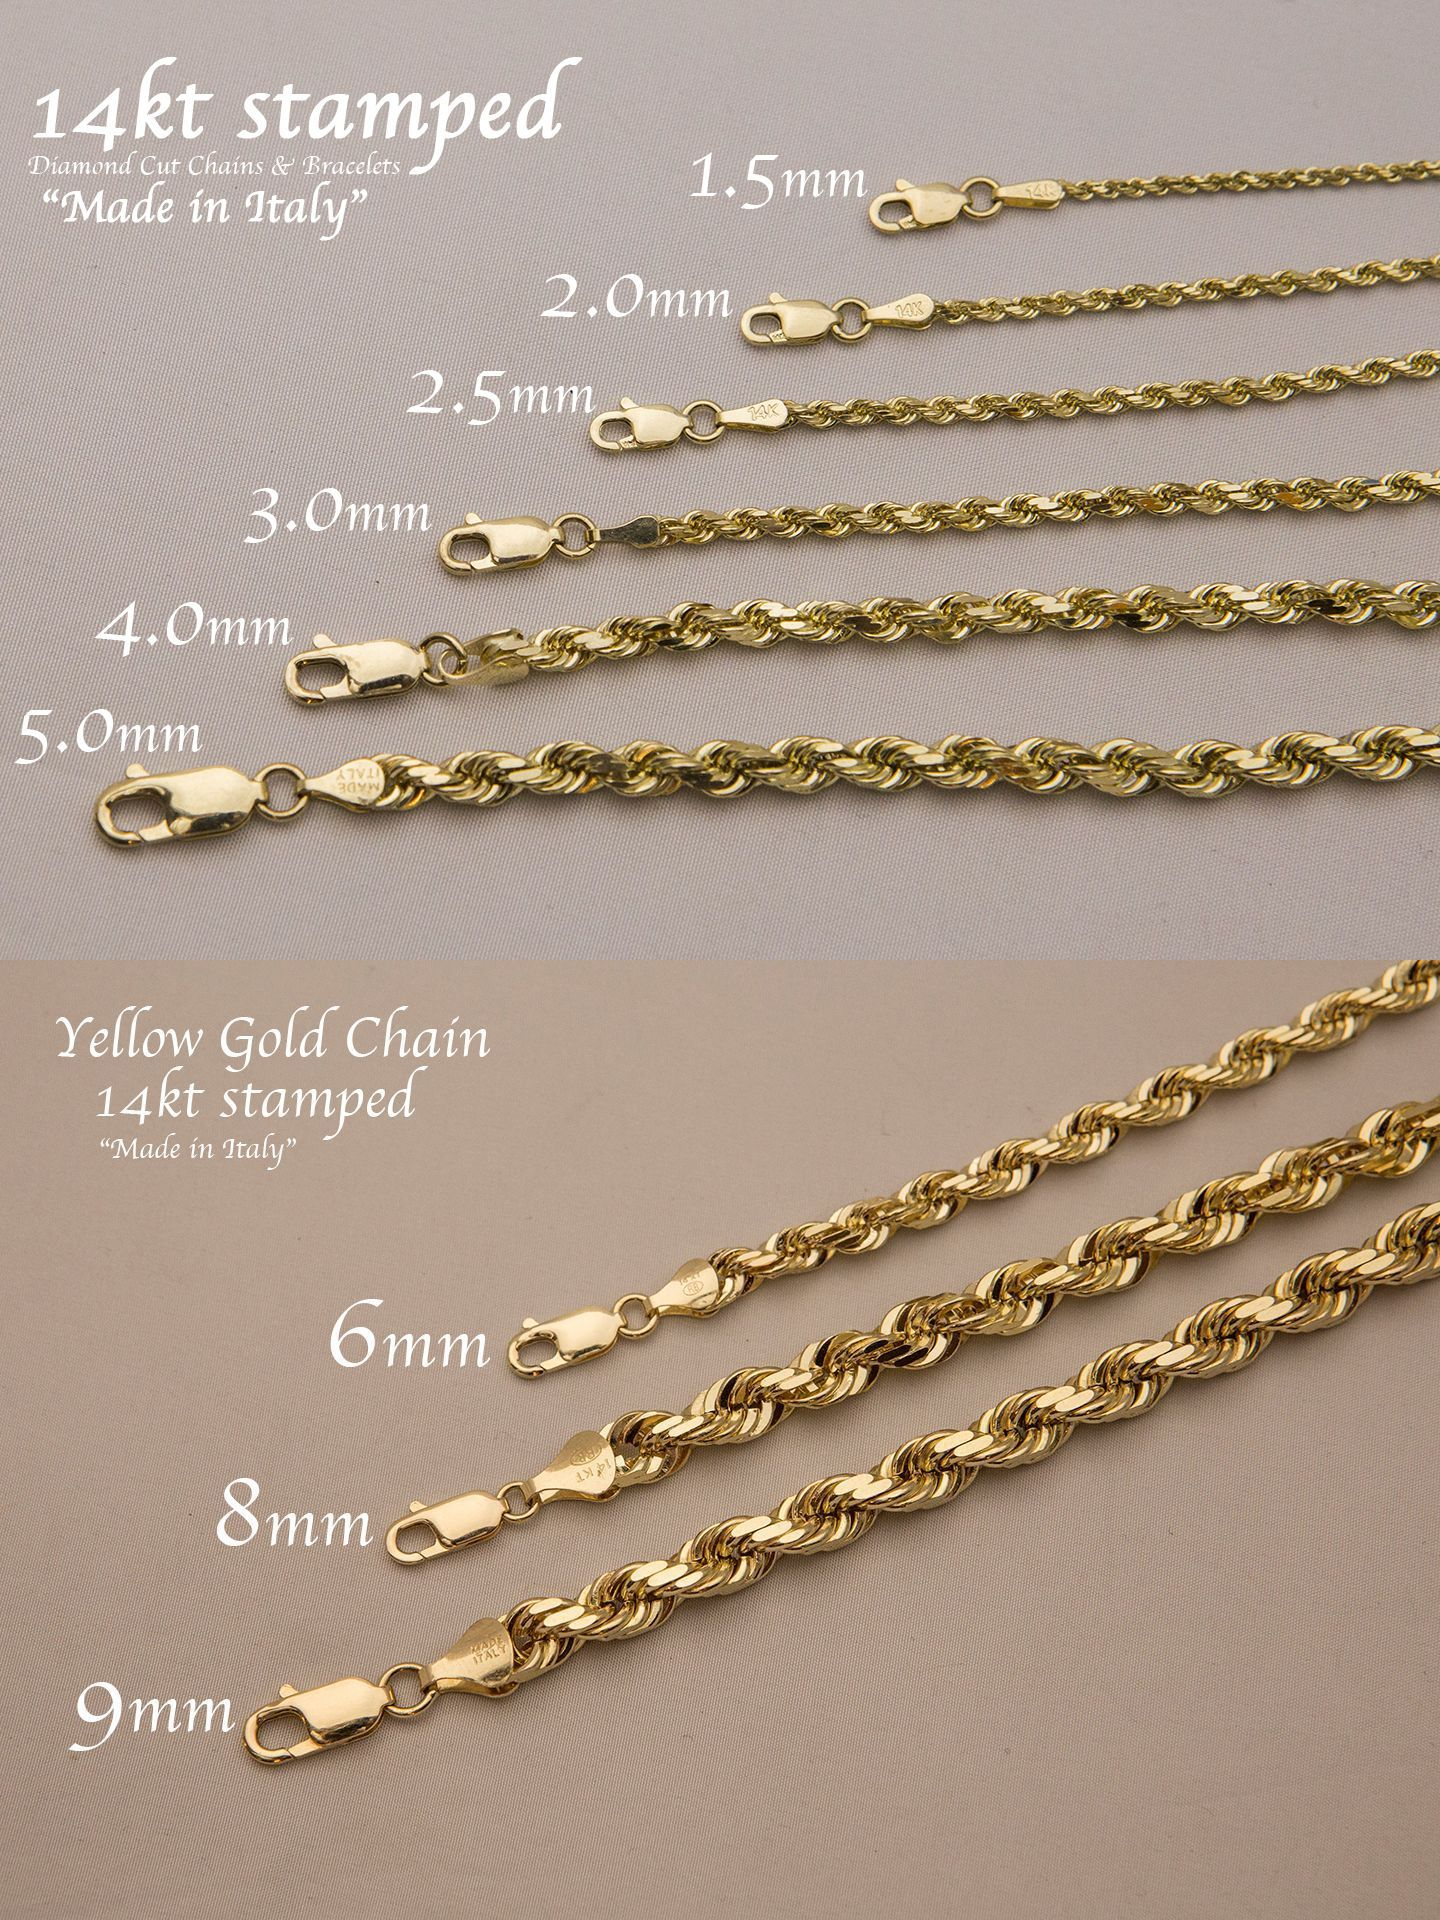 super popular c9c7a cc7e1 Fine Jewelry 4196  14K Solid Yellow Gold Rope Chain Necklace Bracelet  1Mm-9Mm Men Women Sz 7 -36 -  BUY IT NOW ONLY   168.34 on  eBay  jewelry   solid ...